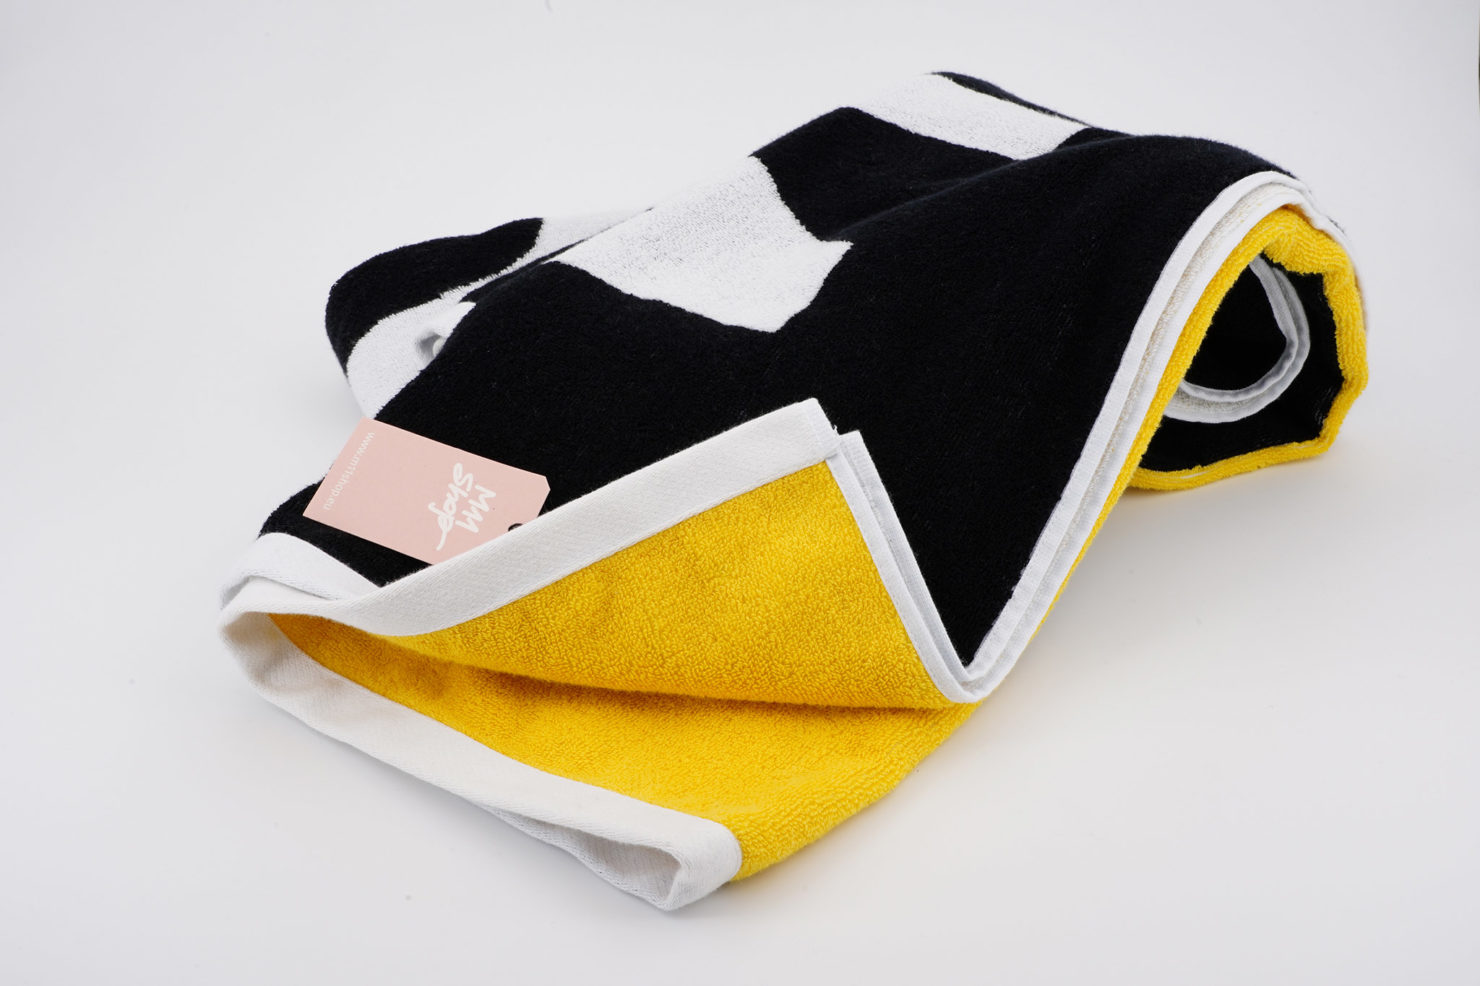 BEACH TOWEL DUNE NUDE YELLOW-BLACK U RON DORFF-STOCKHOLM SPORTS